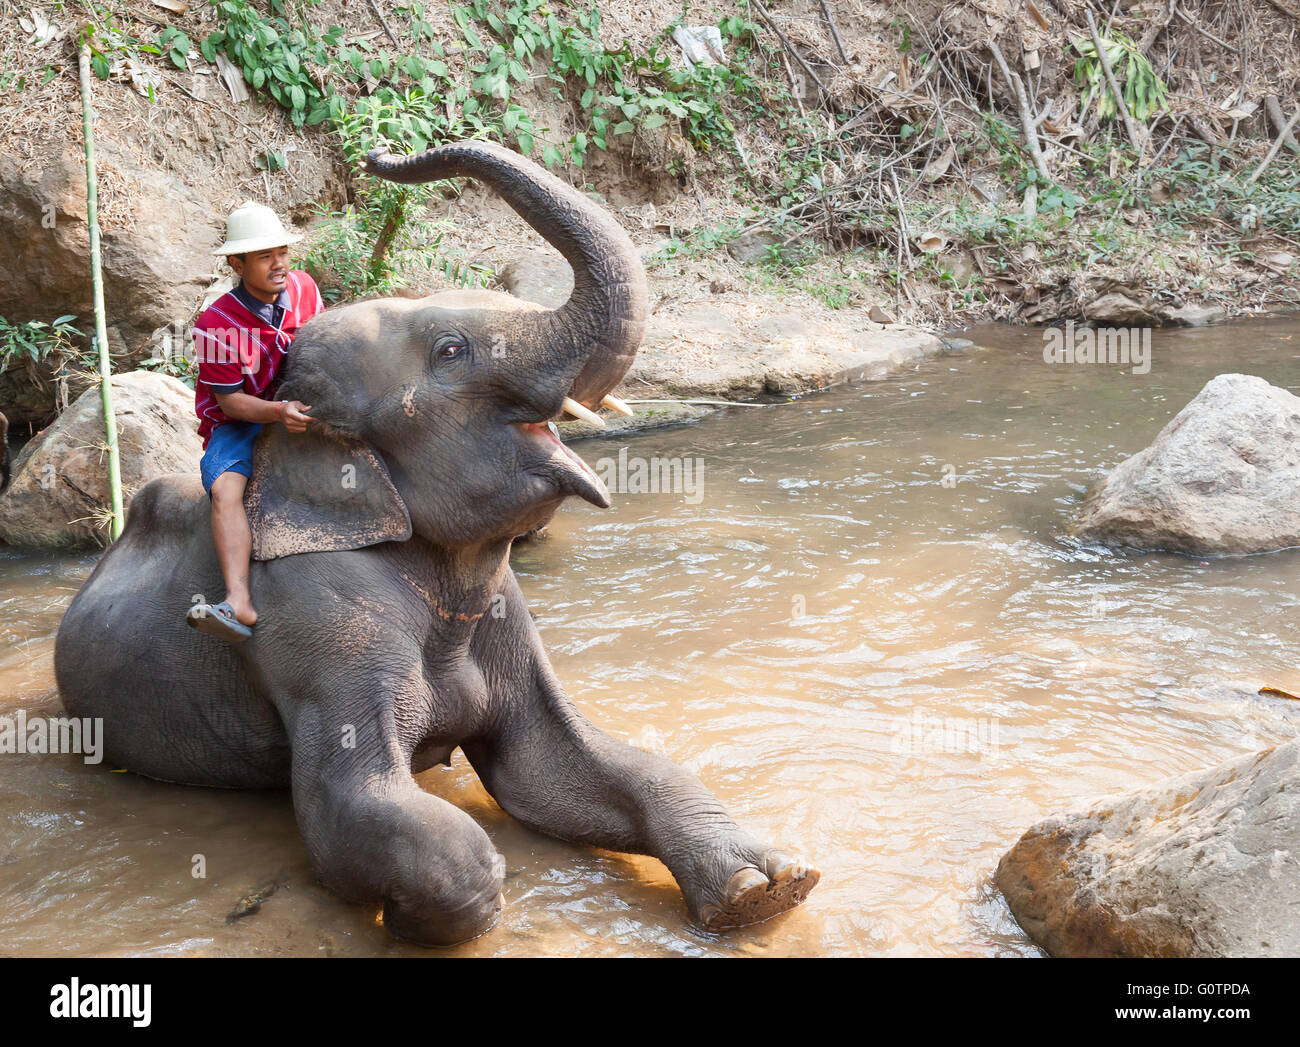 Elephant Tourist Posing riding bathing Experience at Elephant Kingdom in Chiang Rai Thailand - Stock Image